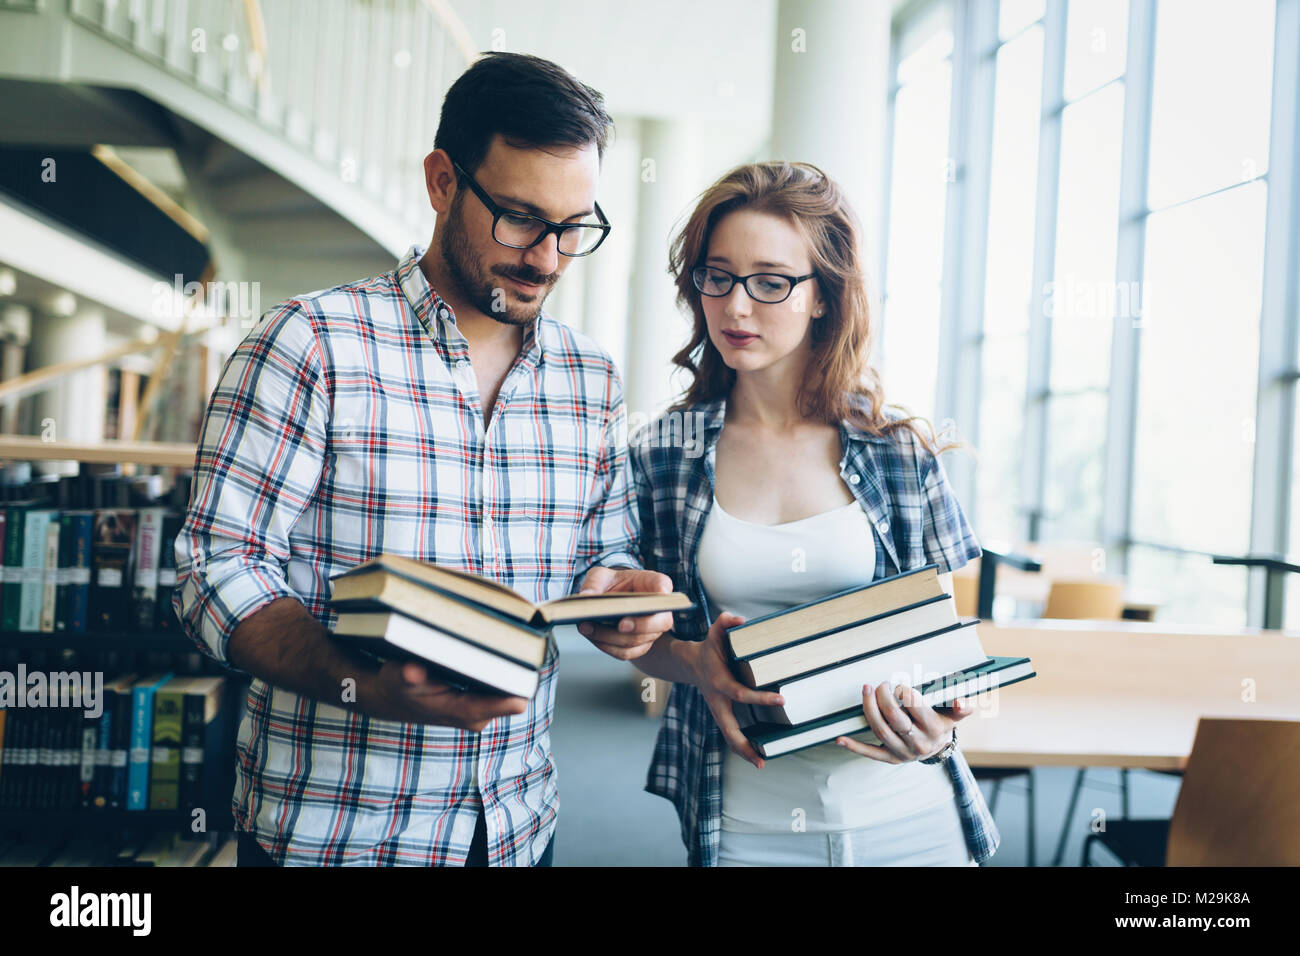 Young woman and man studying for an exam - Stock Image